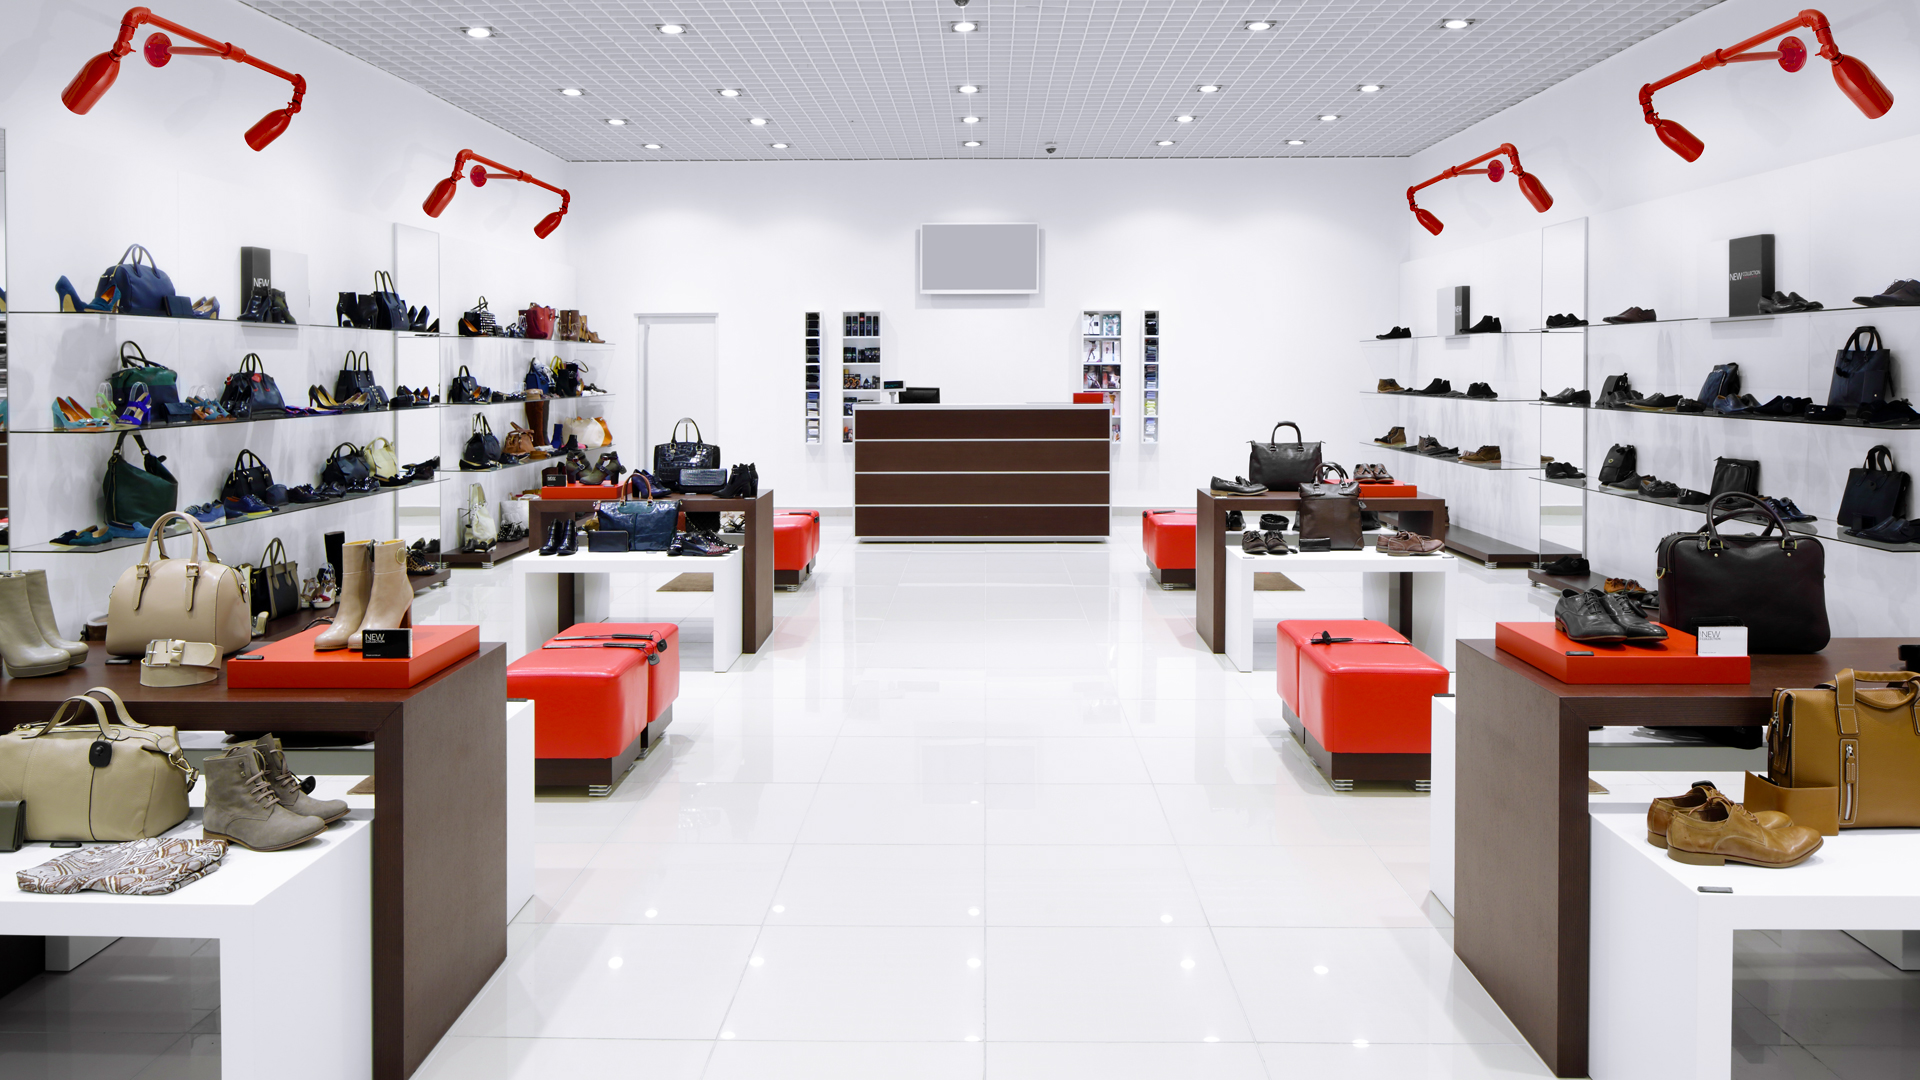 How NLP Can Help To Create Customer-Friendly Retail Stores